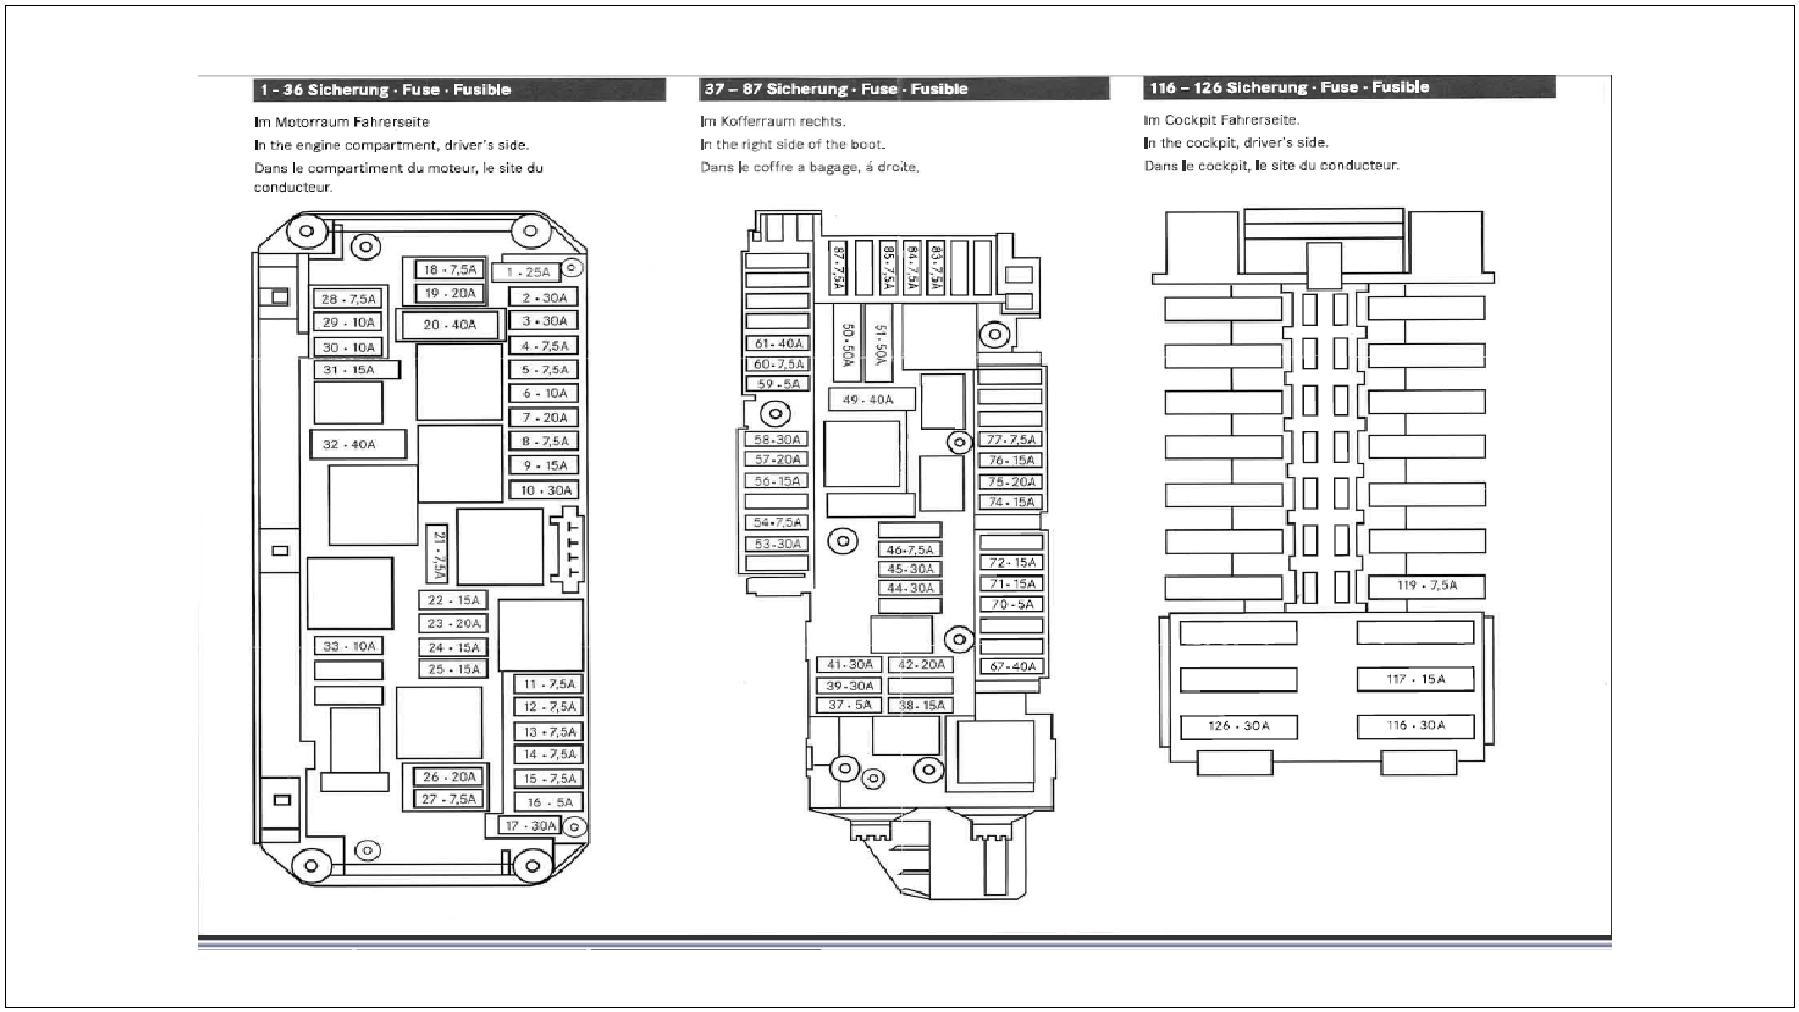 FuseAllocation2 65535 mercedes benz b200 fuse box on mercedes download wirning diagrams mercedes cla fuse box diagram at panicattacktreatment.co